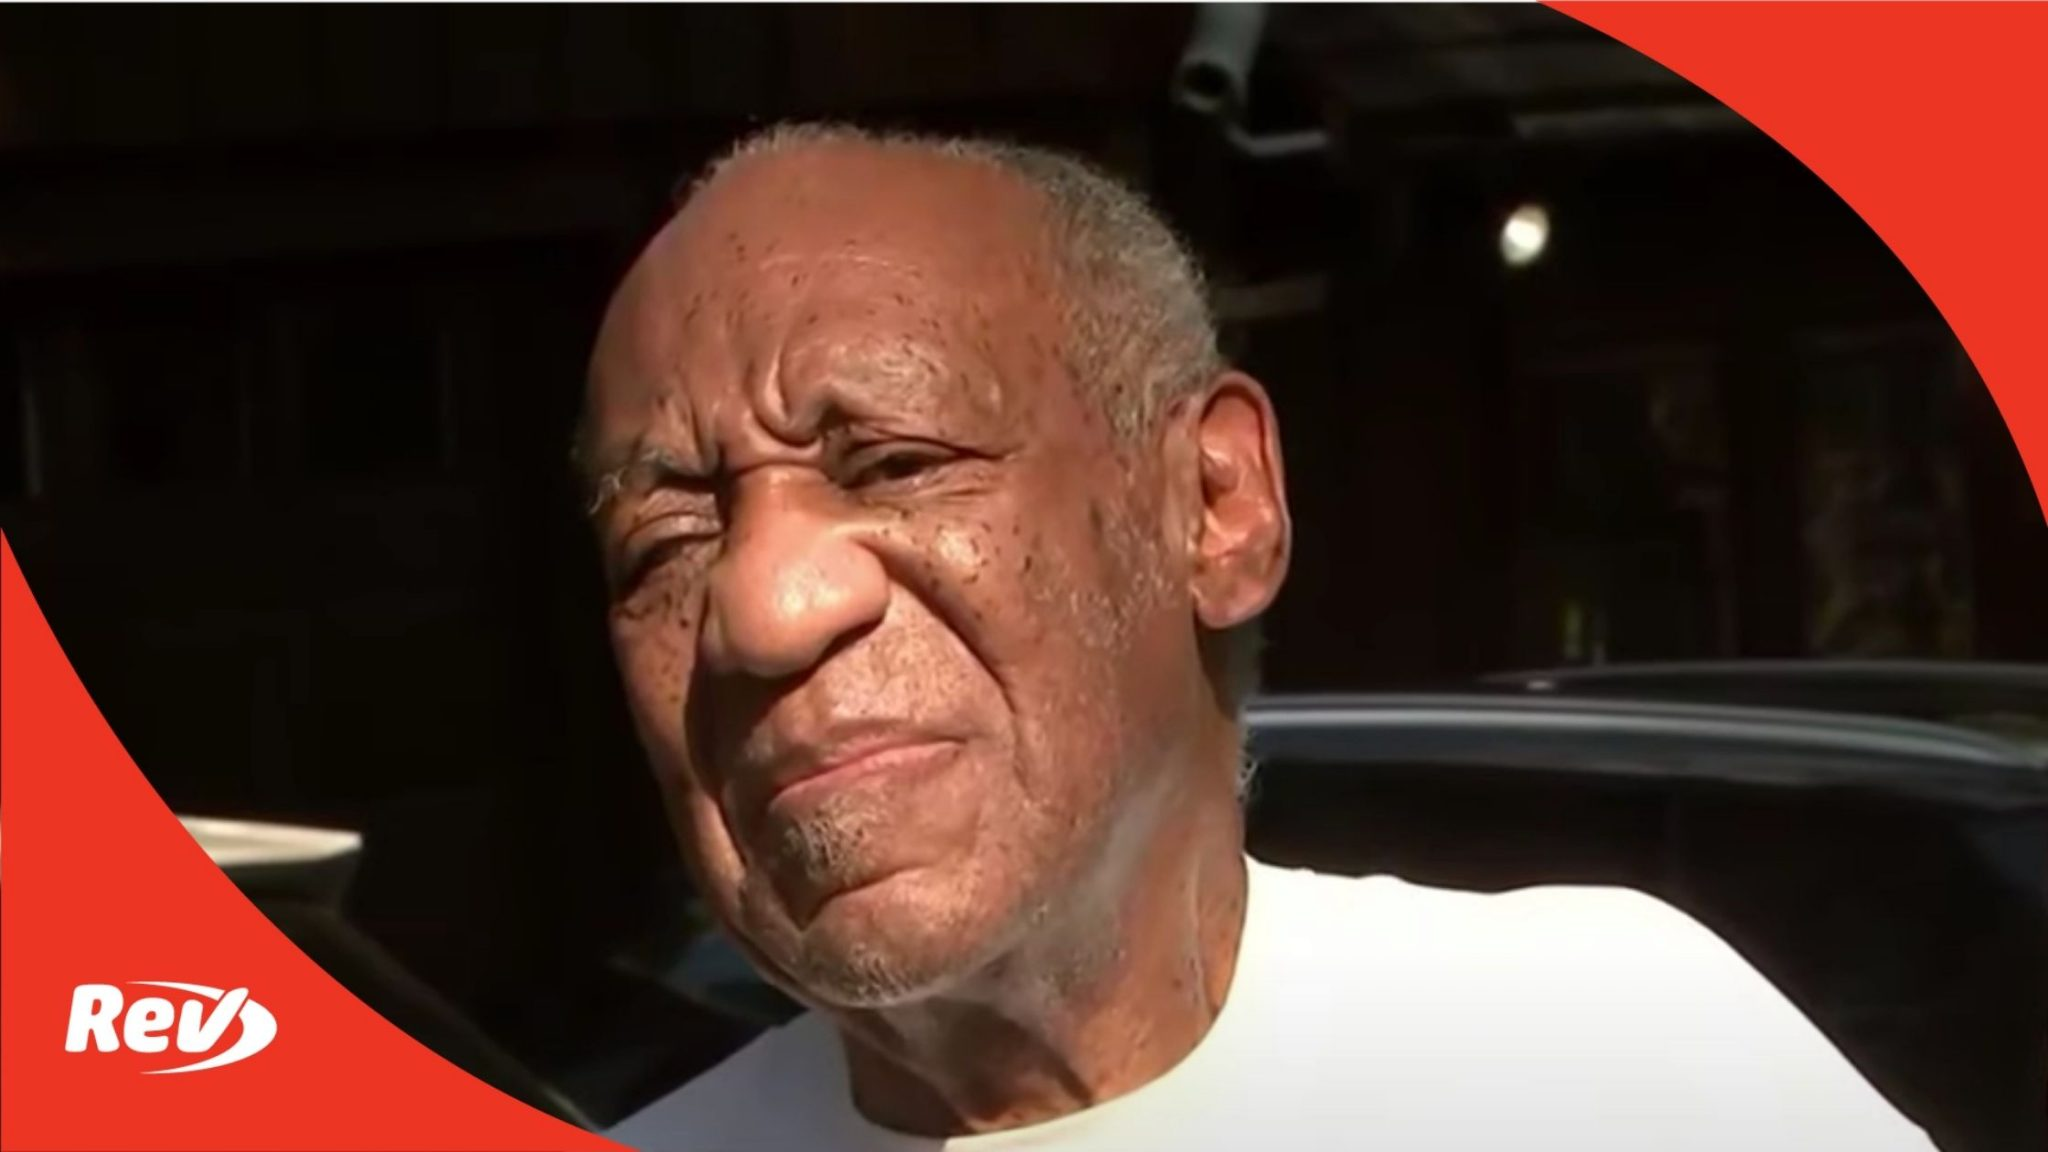 Bill Cosby Lawyers Press Conference Transcript After Prison Release